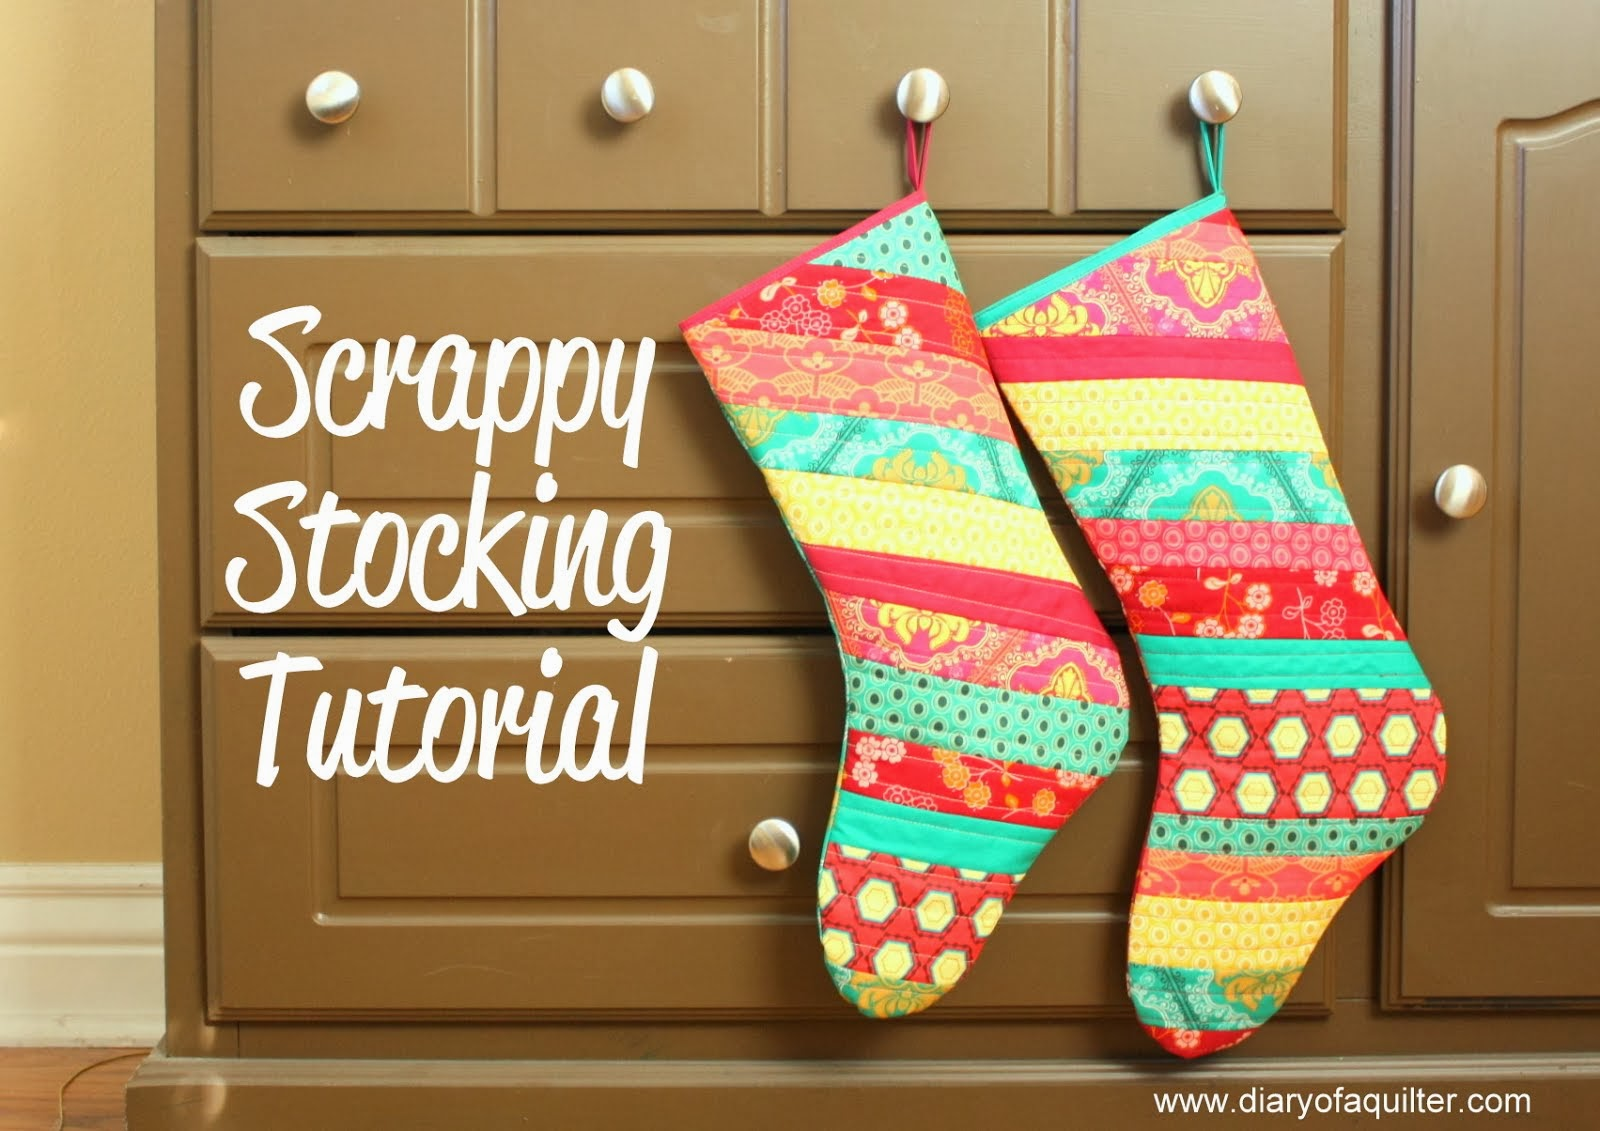 Scrappy Stocking